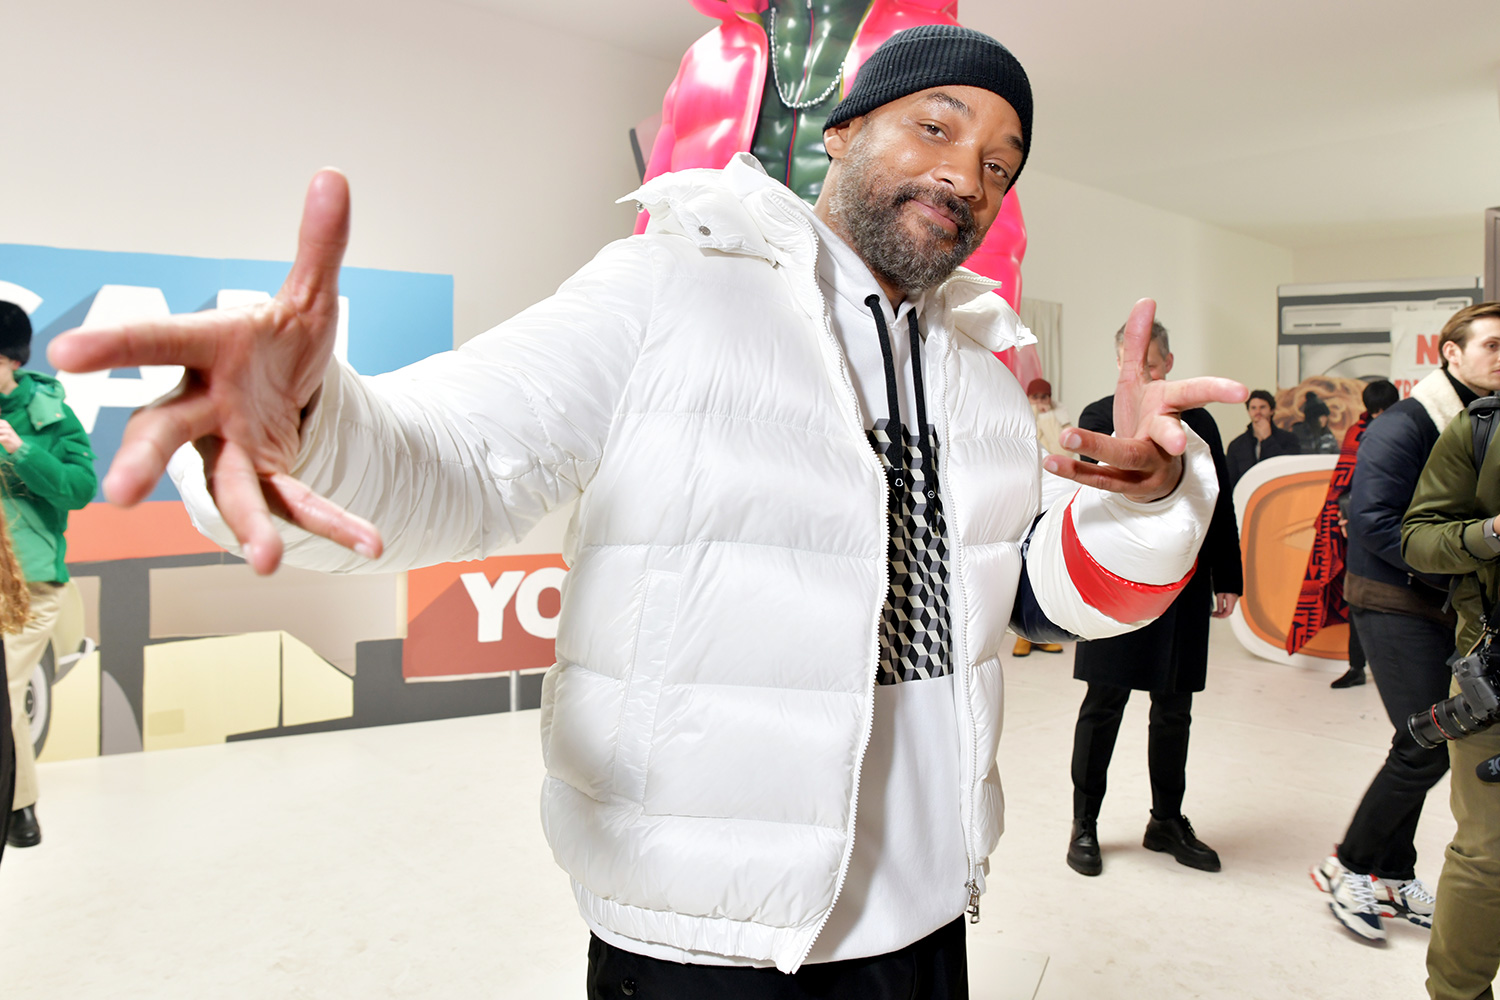 Will Smith in the front row Moncler presentation, Front Row, Fall Winter 2020, Milan Fashion Week, Italy - 19 Feb 2020